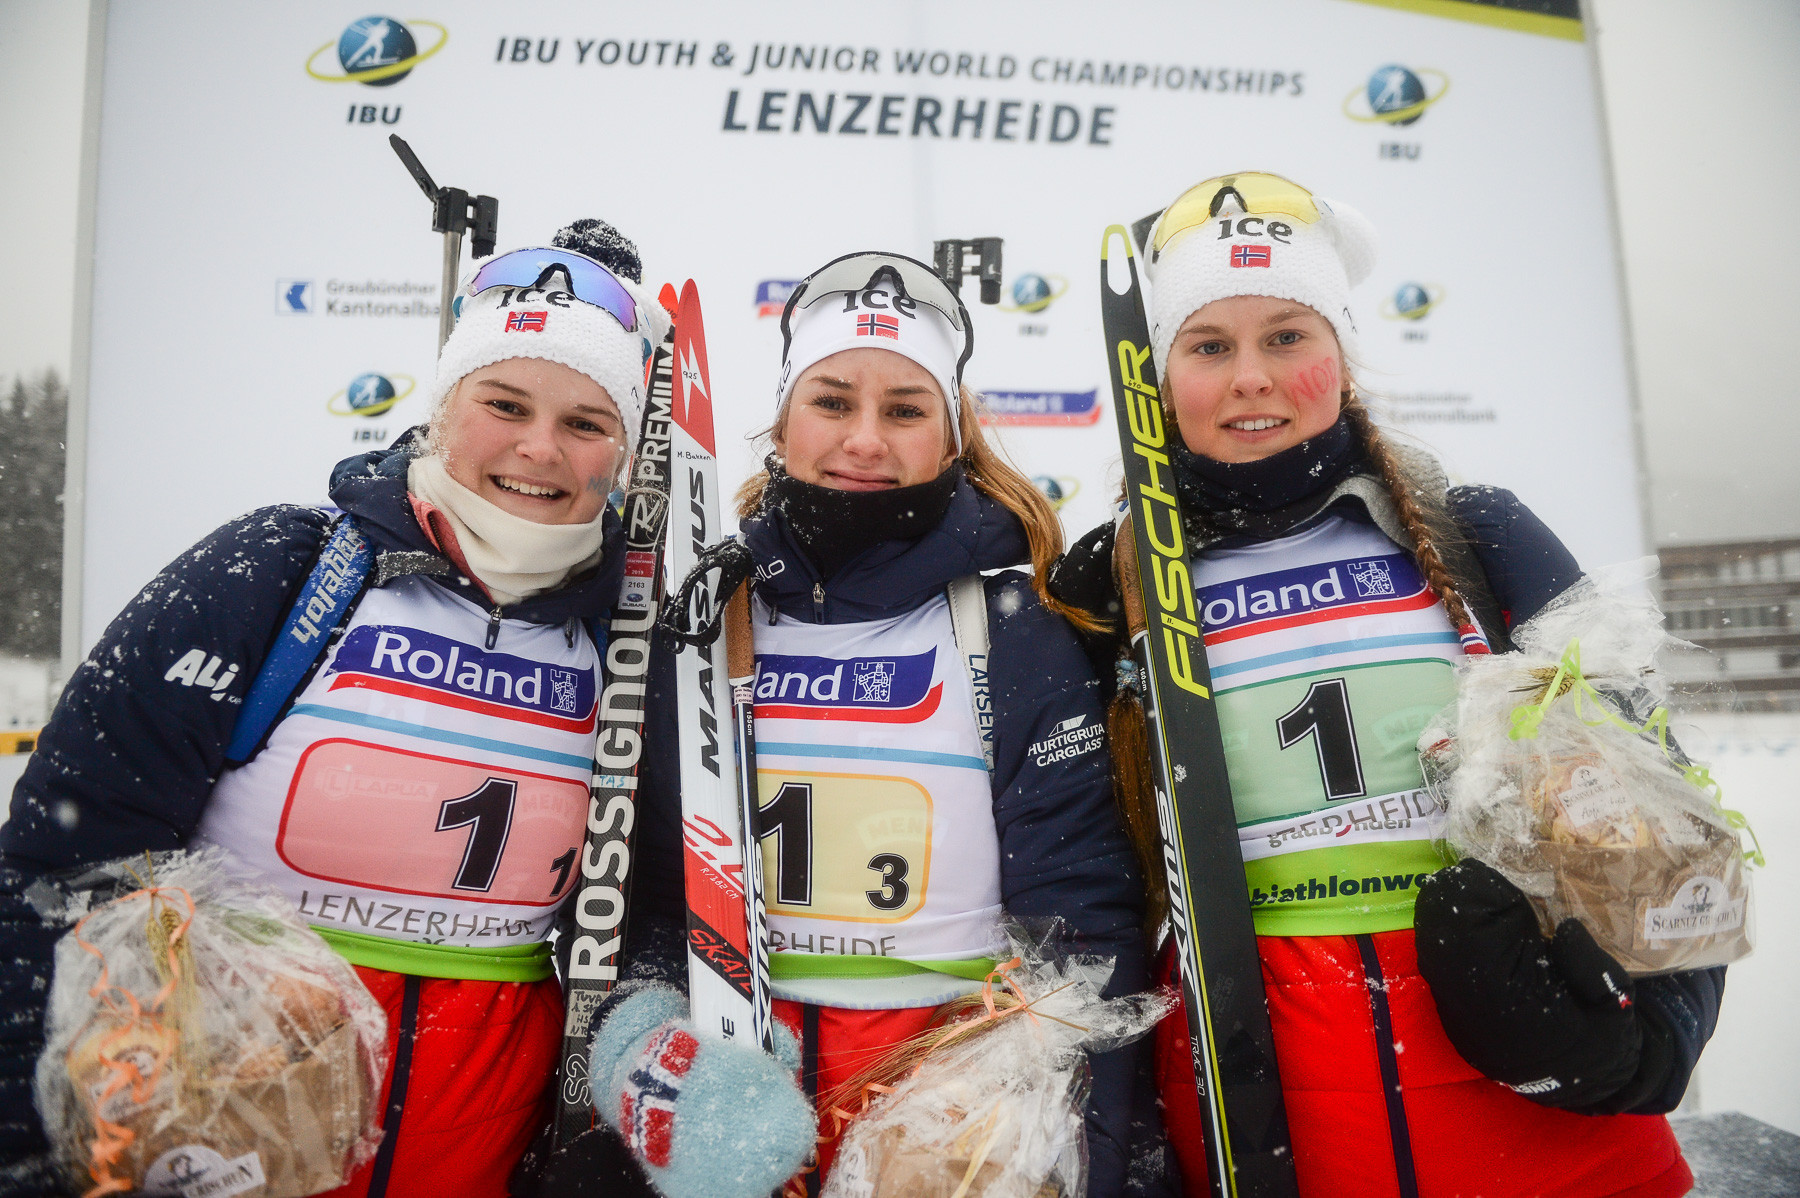 Double relay gold for Norway at IBU Junior World Championships